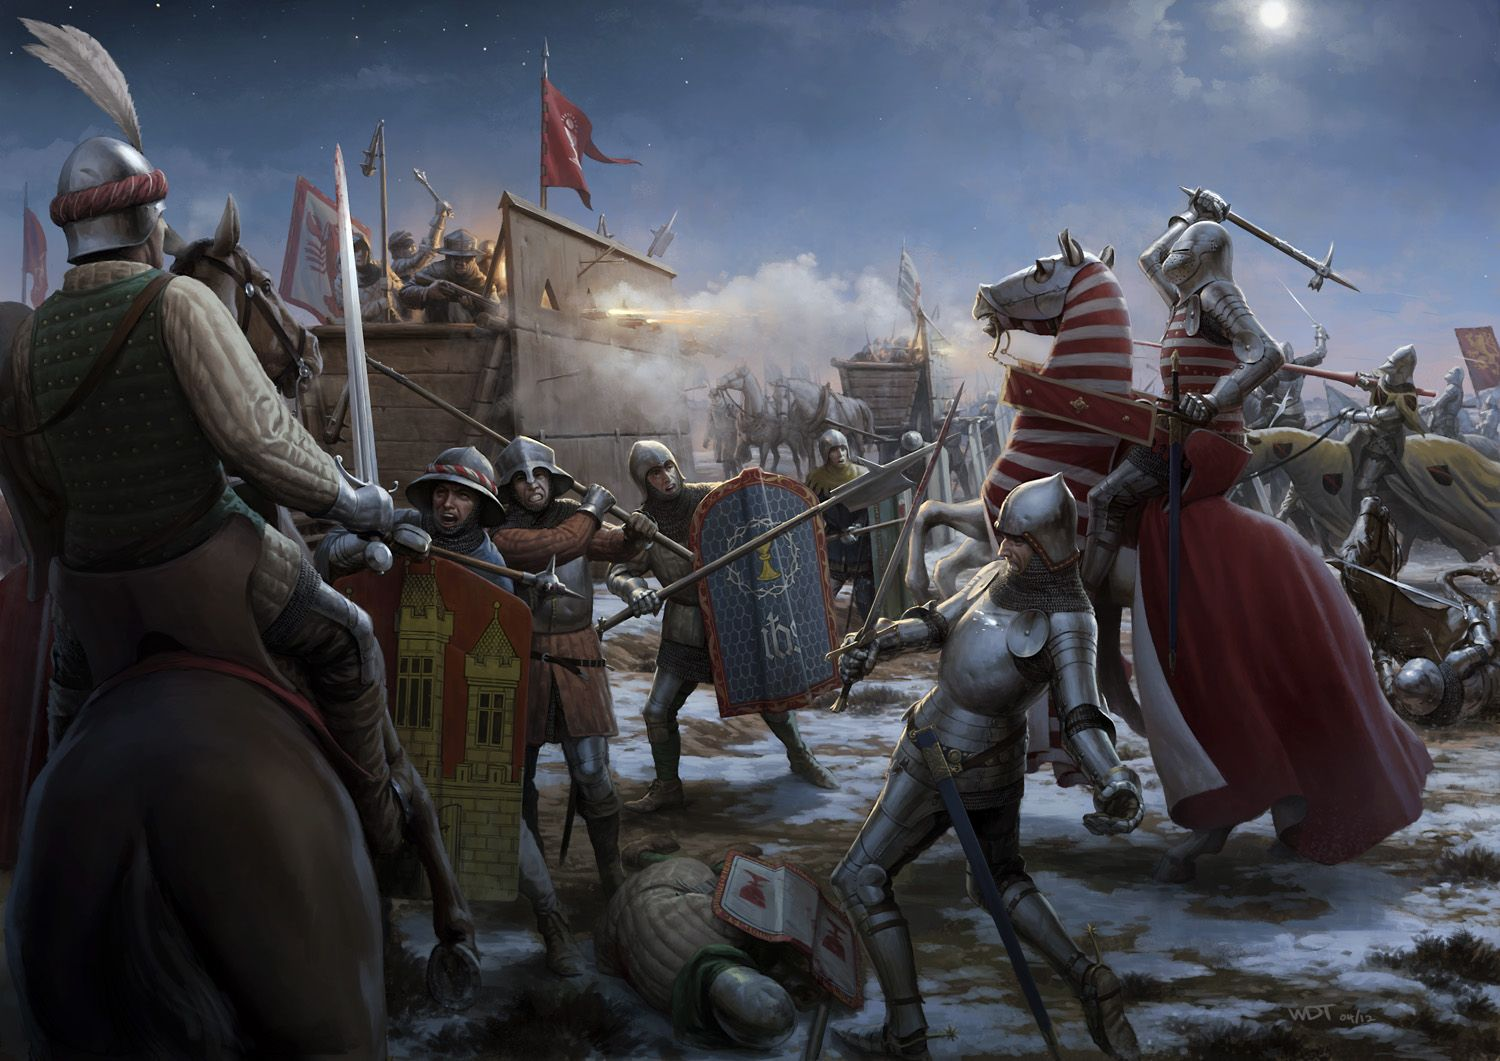 Battle of Kutna Hora by *wraithdt on deviantART wraithdt.deviantart.com/